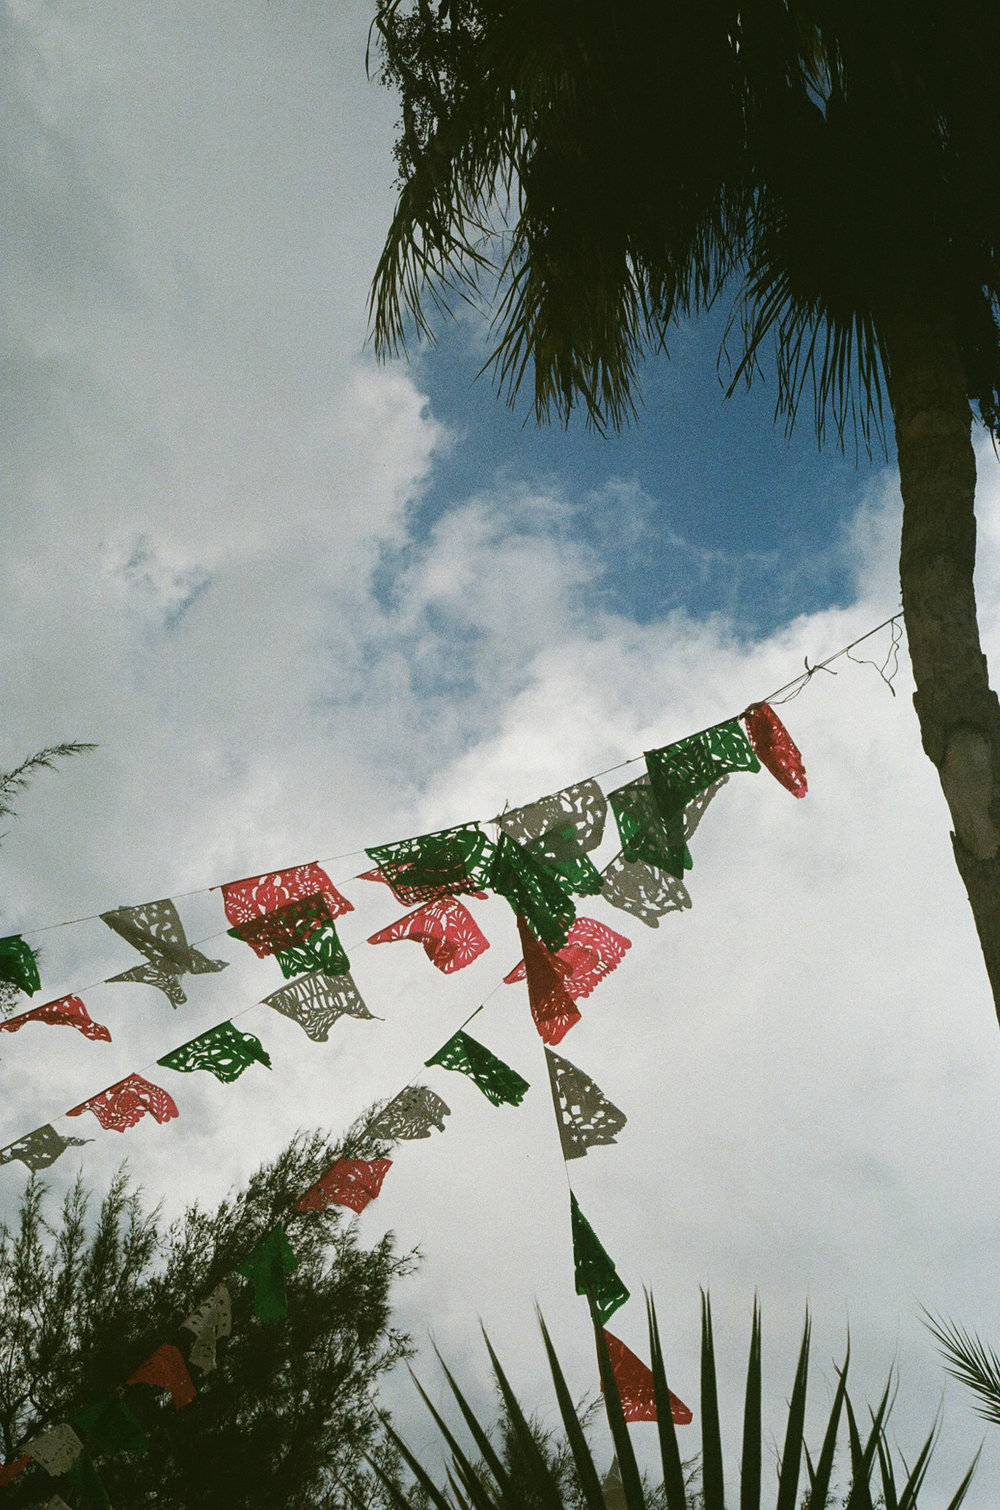 MEXICO_OCT2018_35MM_72.JPG